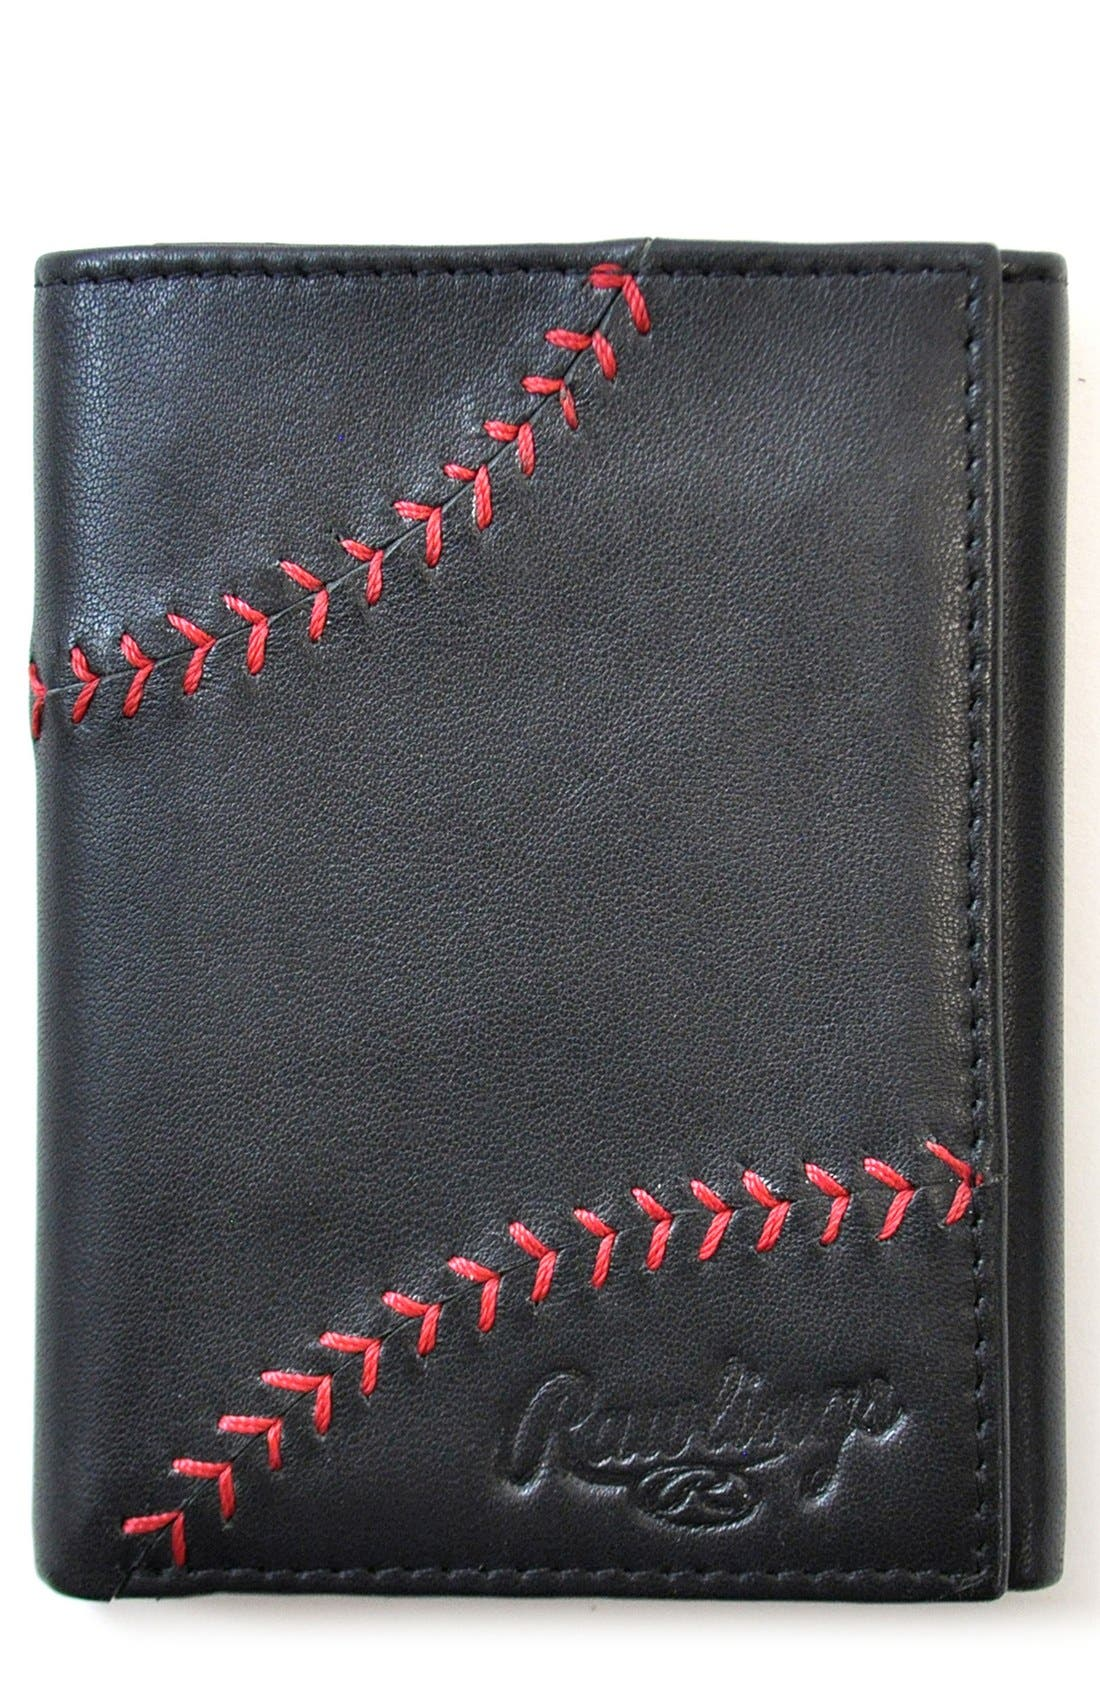 Baseball Stitch Leather Trifold Wallet,                         Main,                         color, Black